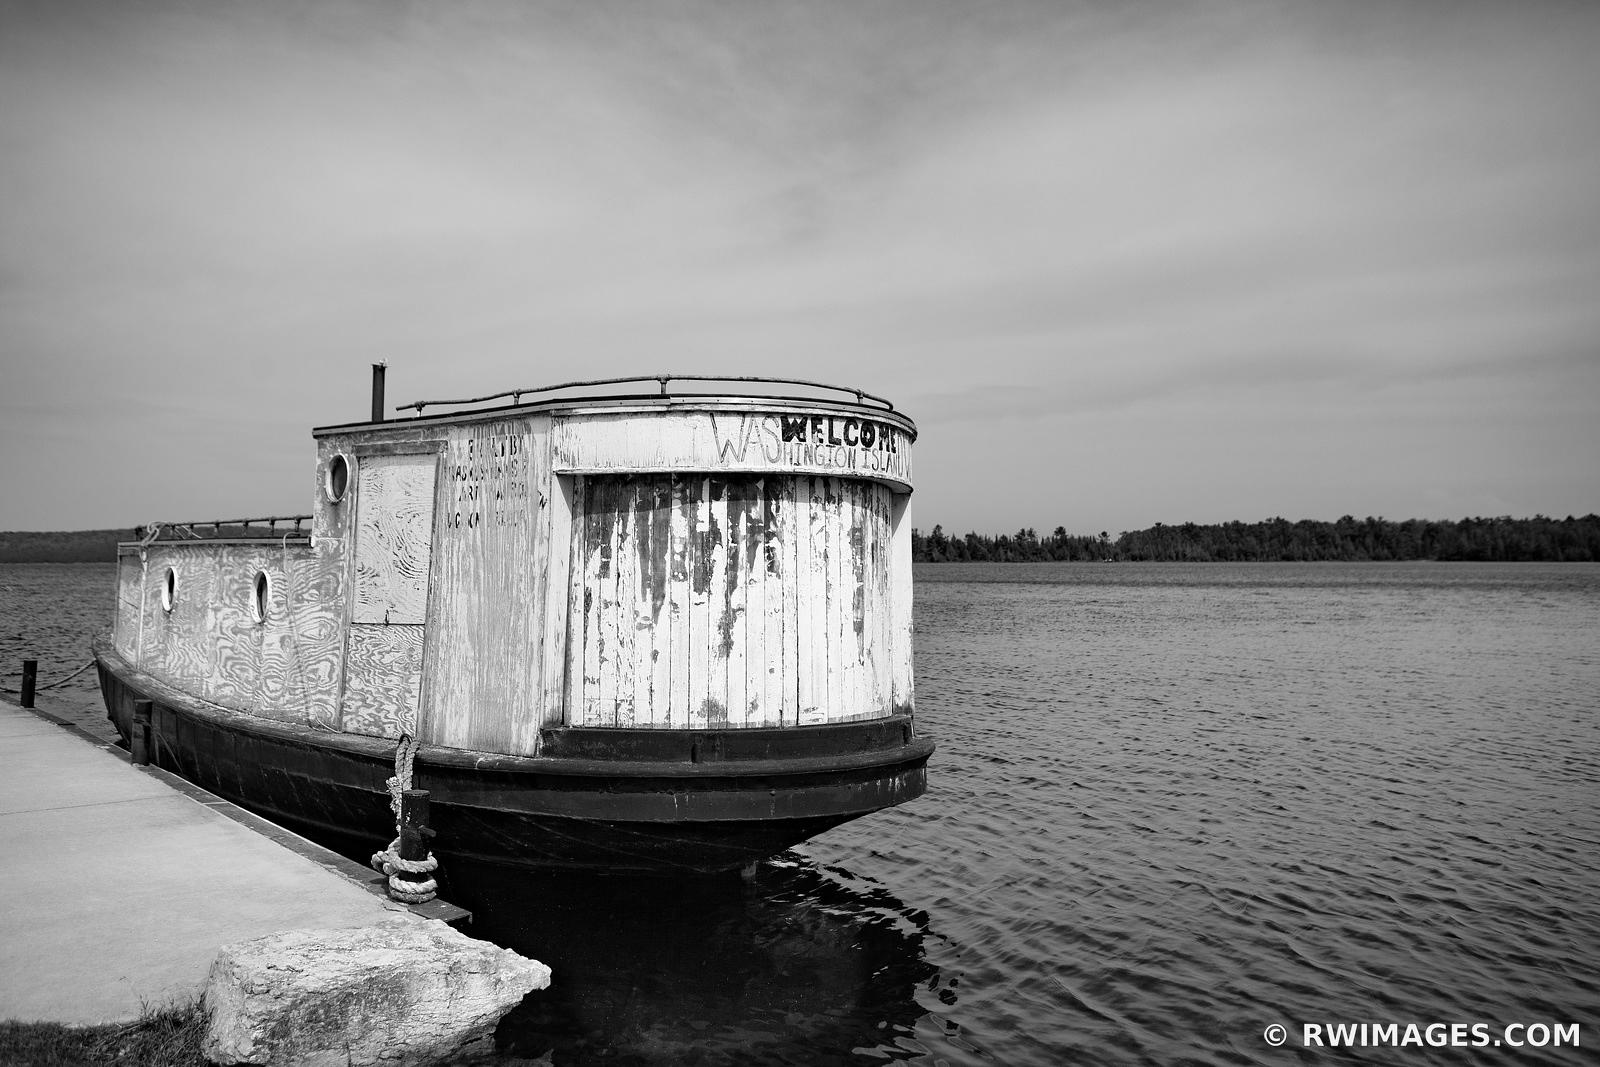 JACKSON HARBOR OLD FISHING BOAT WELCOME TO WASHINGTON ISLAND DOOR COUNTY WISCONSIN BLACK AND WHITE